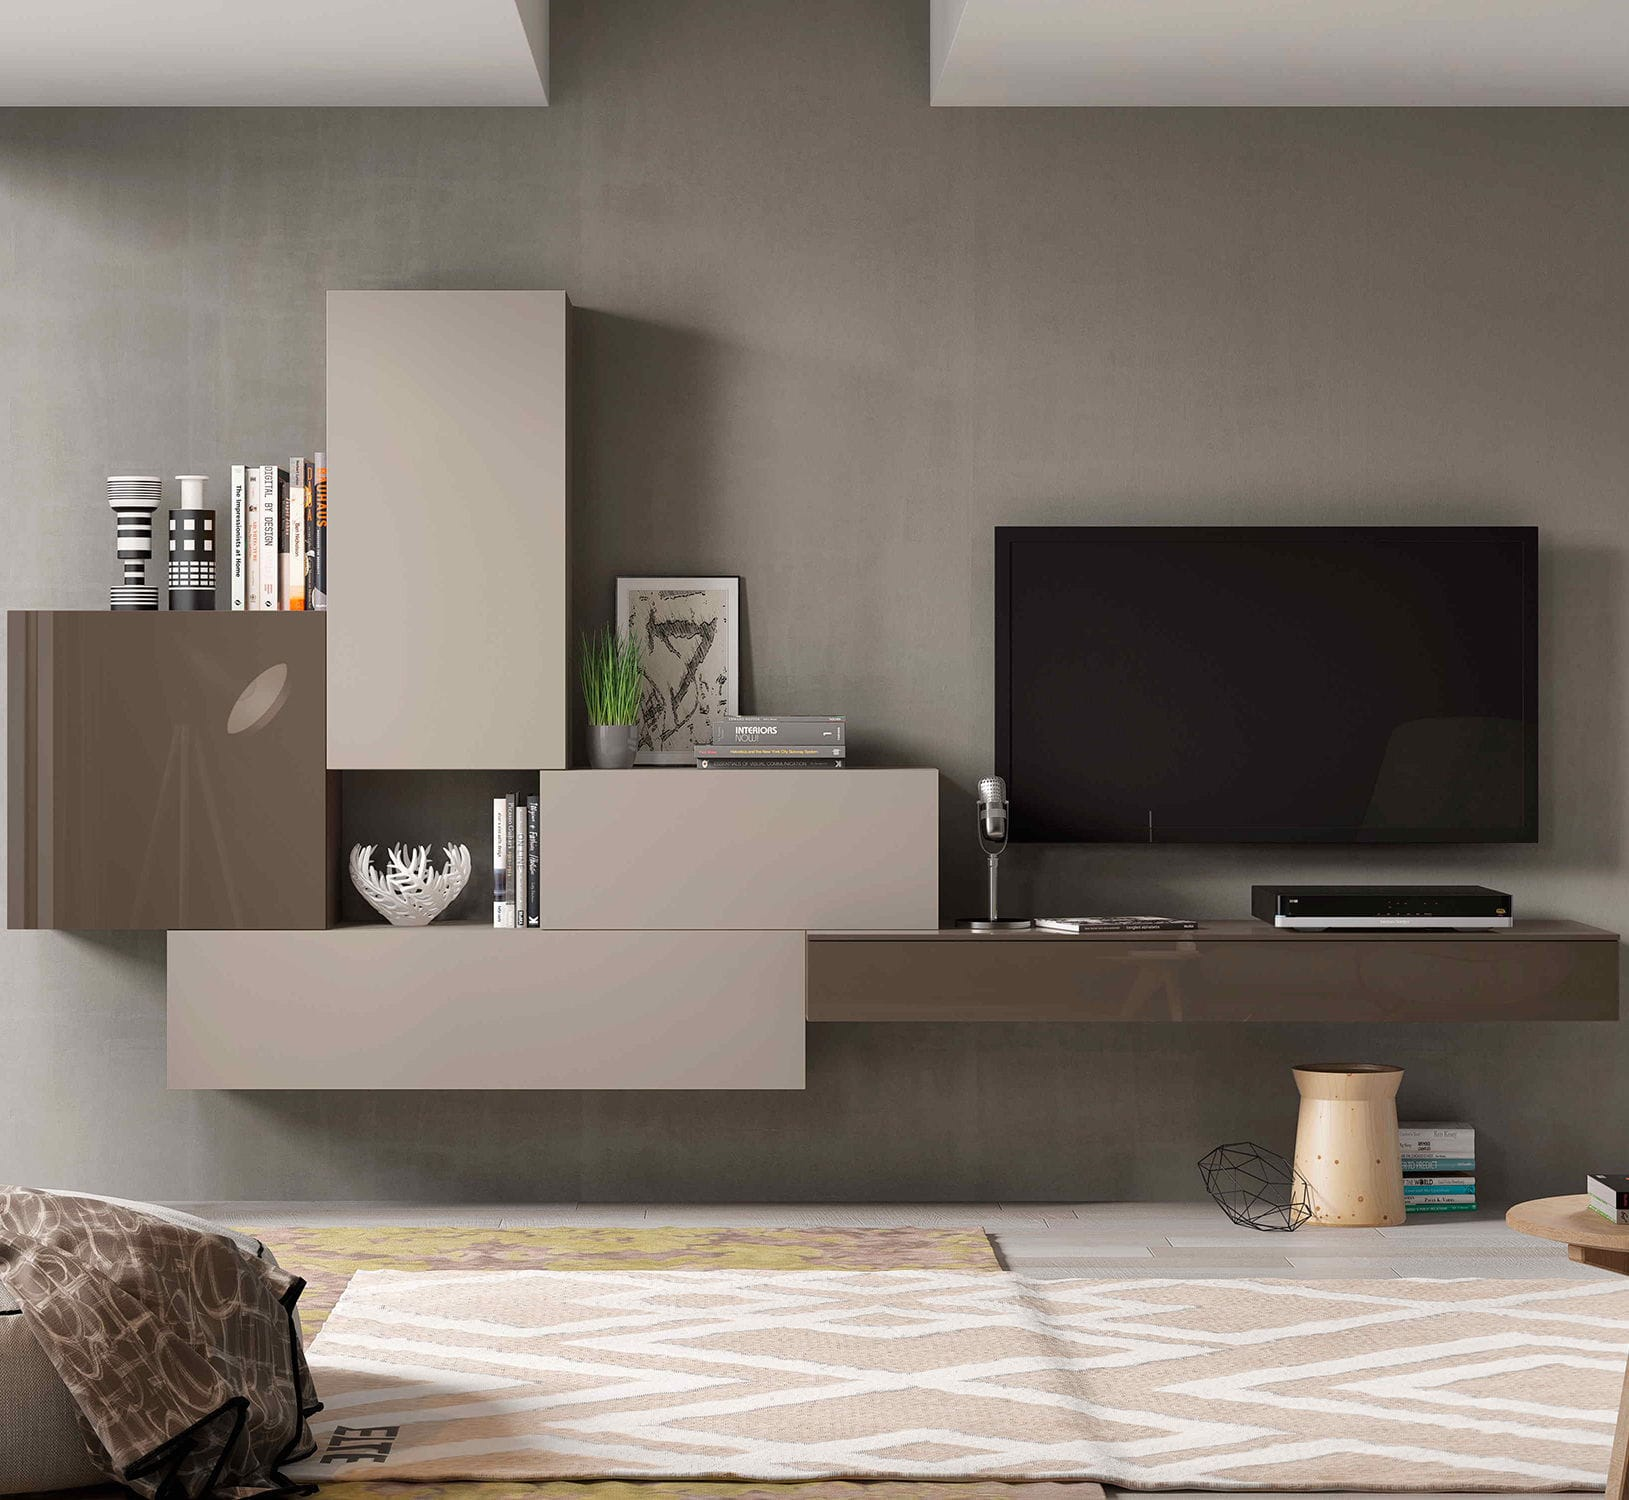 Contemporary Tv Wall Unit Lacquered Wood Impersonal2k15 9  # Muebles Piferrer Iline